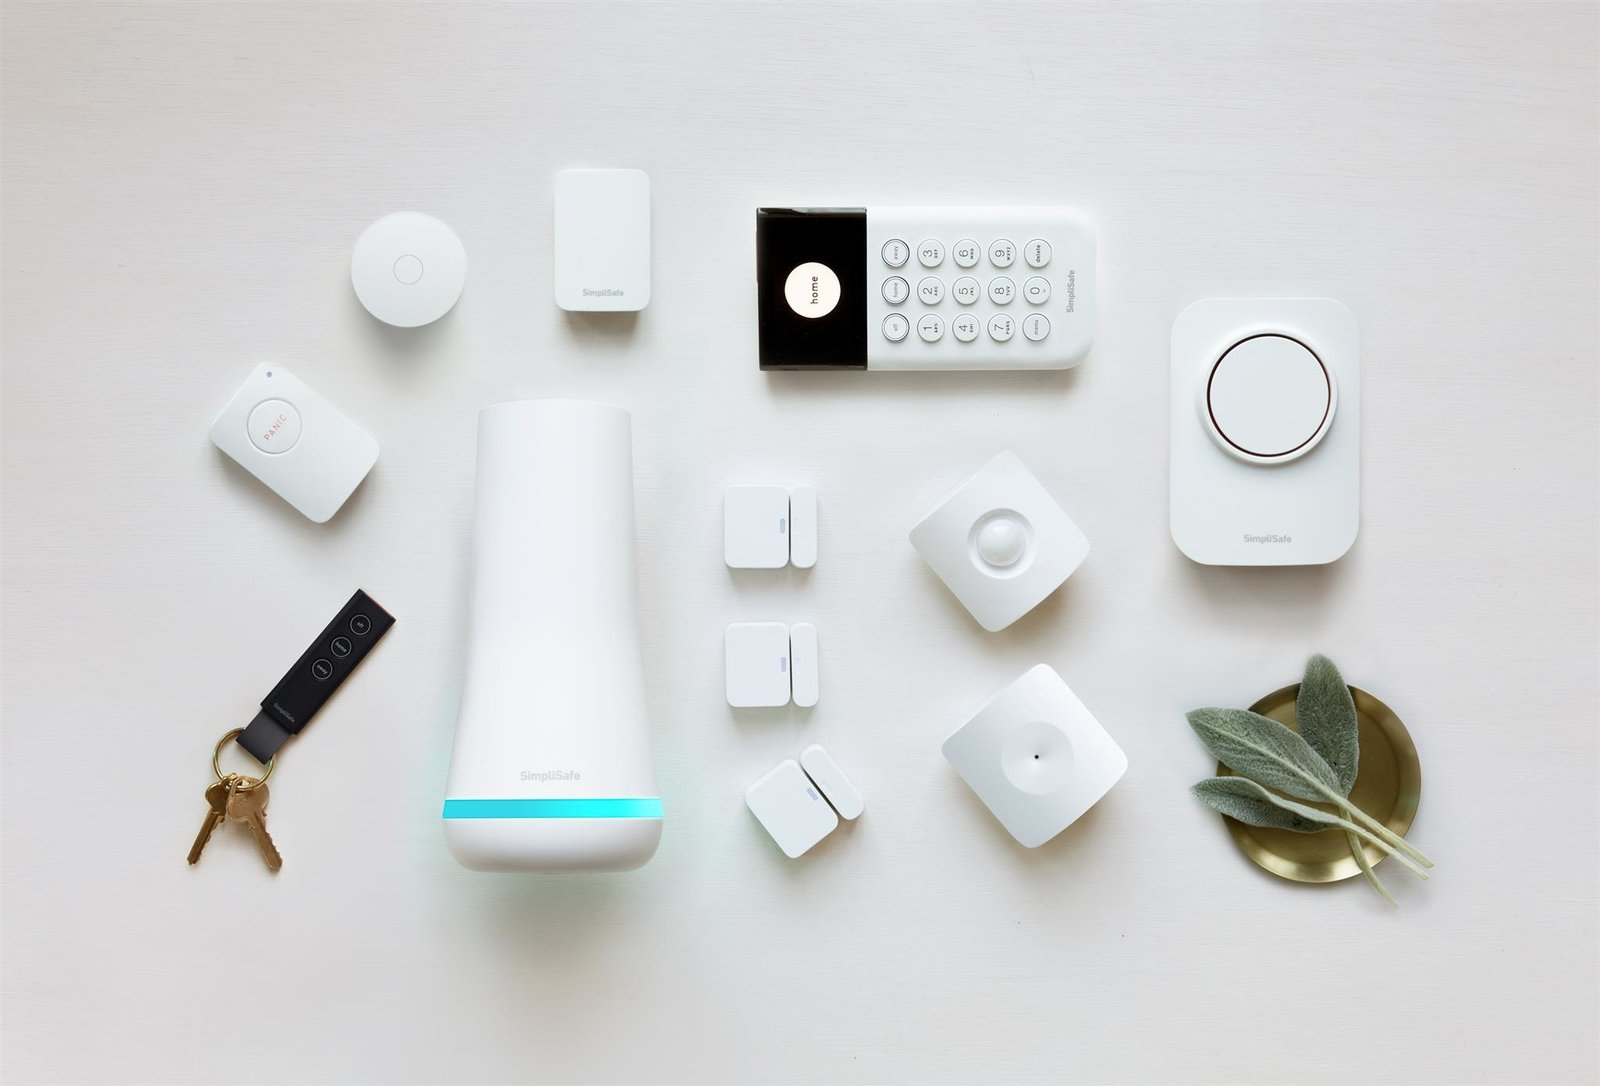 Practically Invisible Home Security For The Design Obsessed